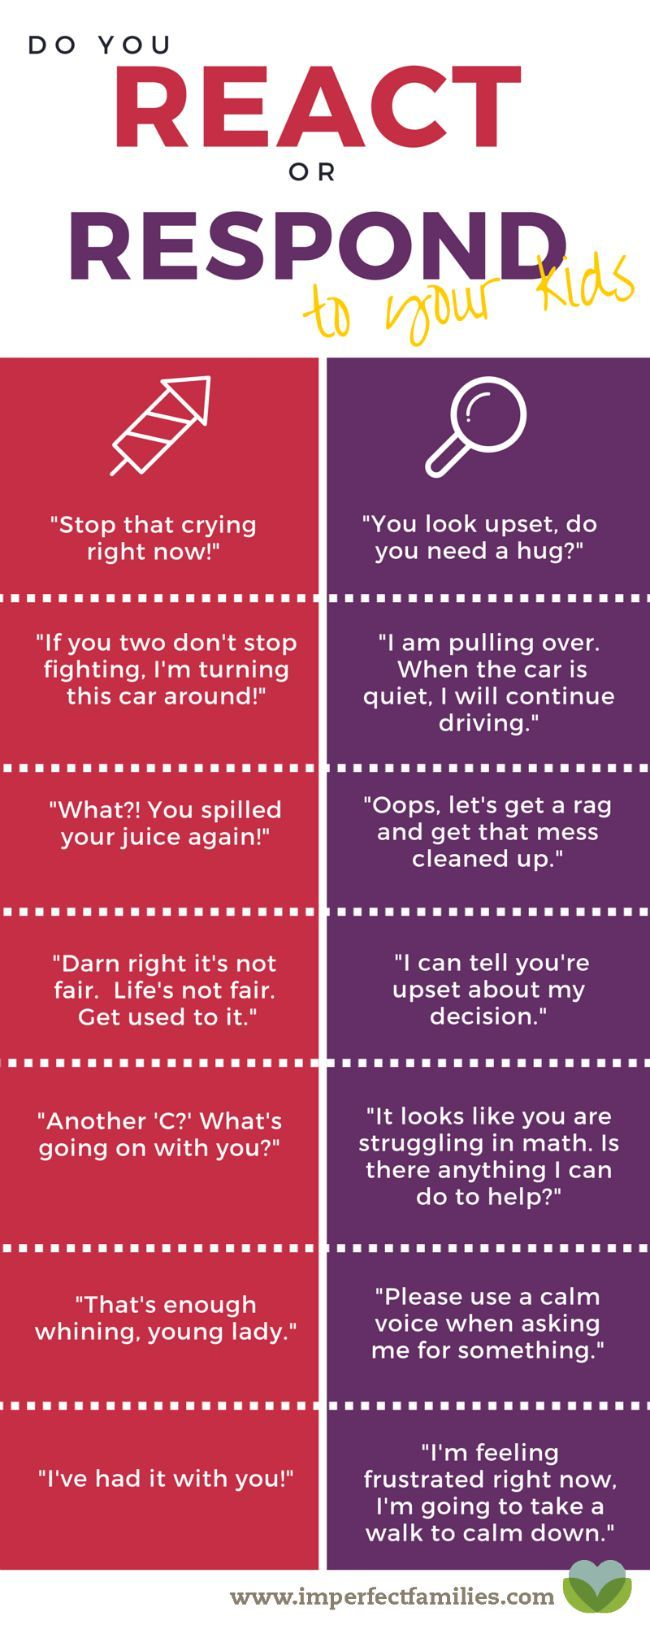 Examples of how we react vs. respond to our kids